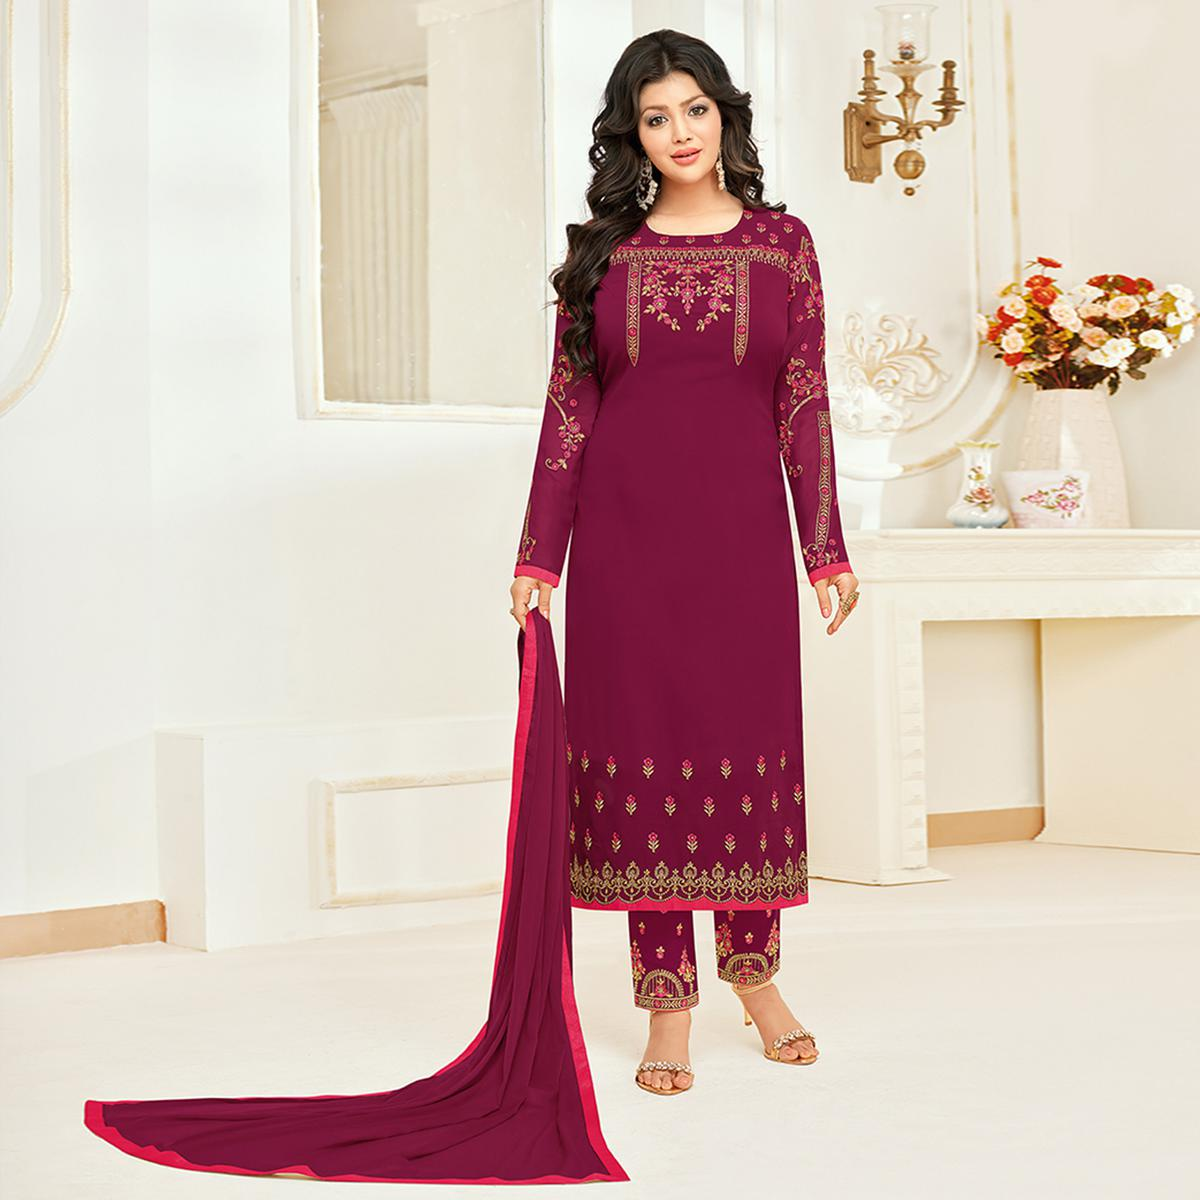 Marvellous Dark Magenta Colored Partywear Embroidered Georgette Suit